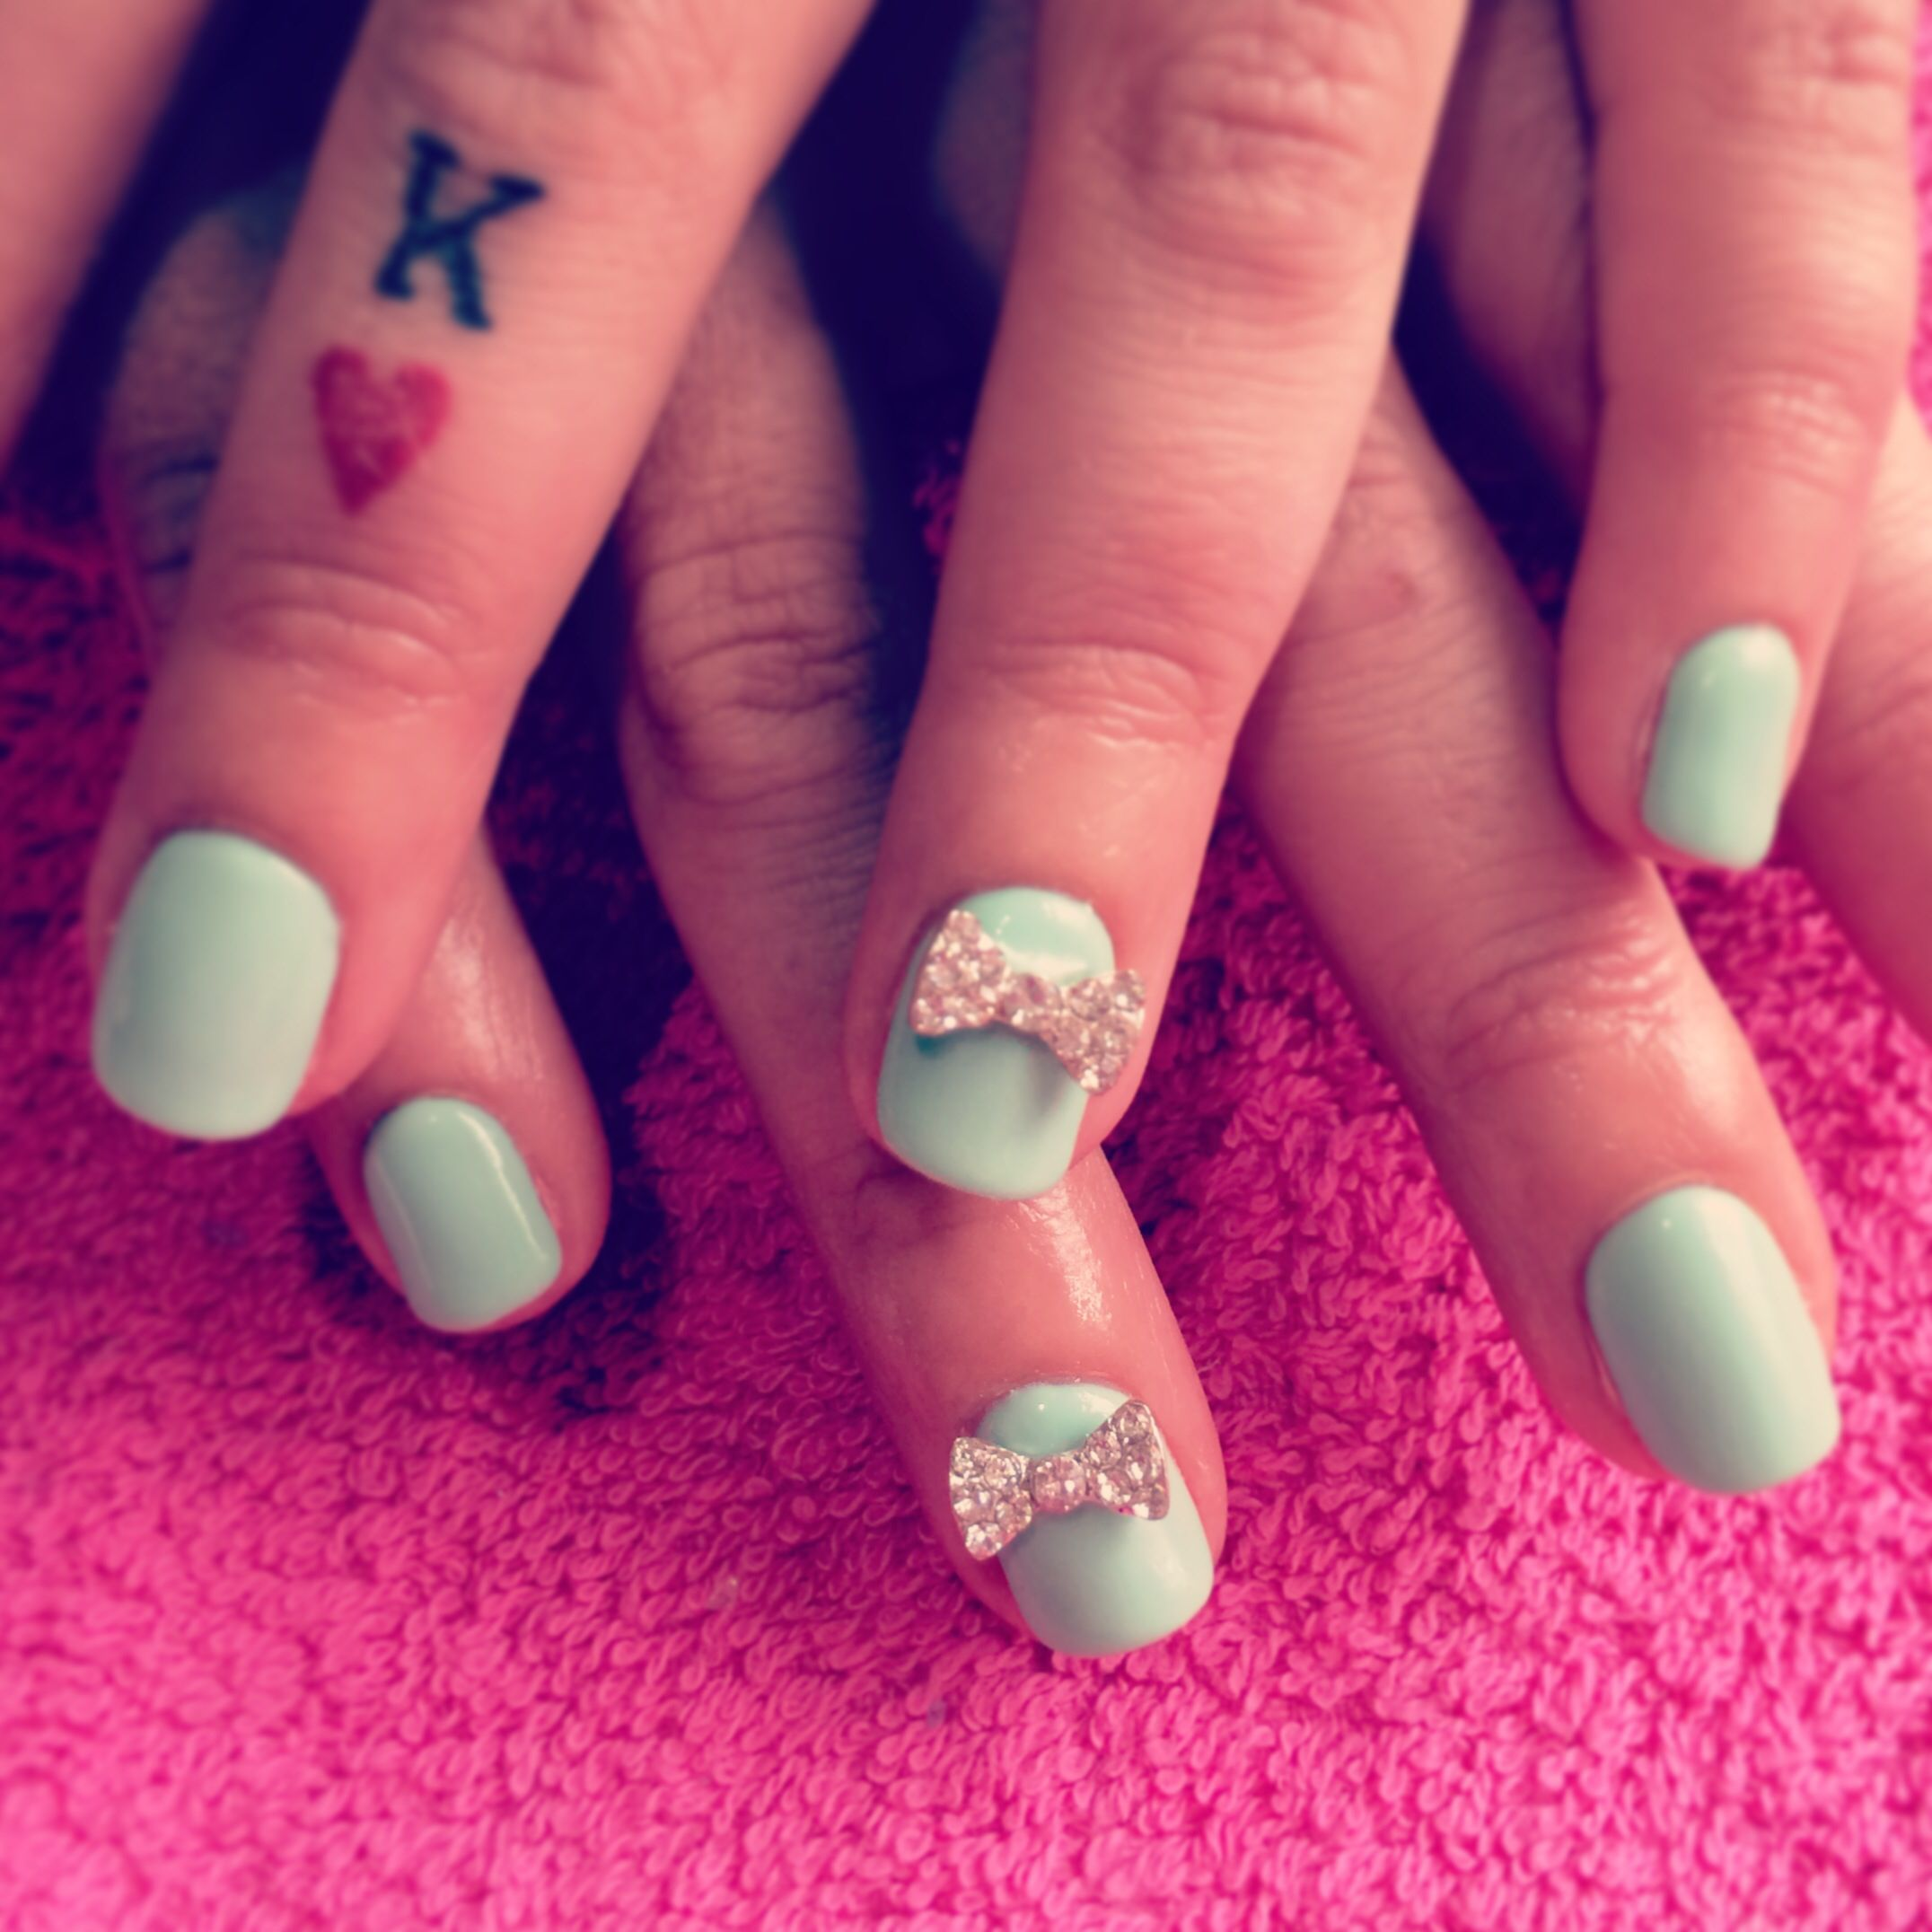 Mint calgel with 3D bows